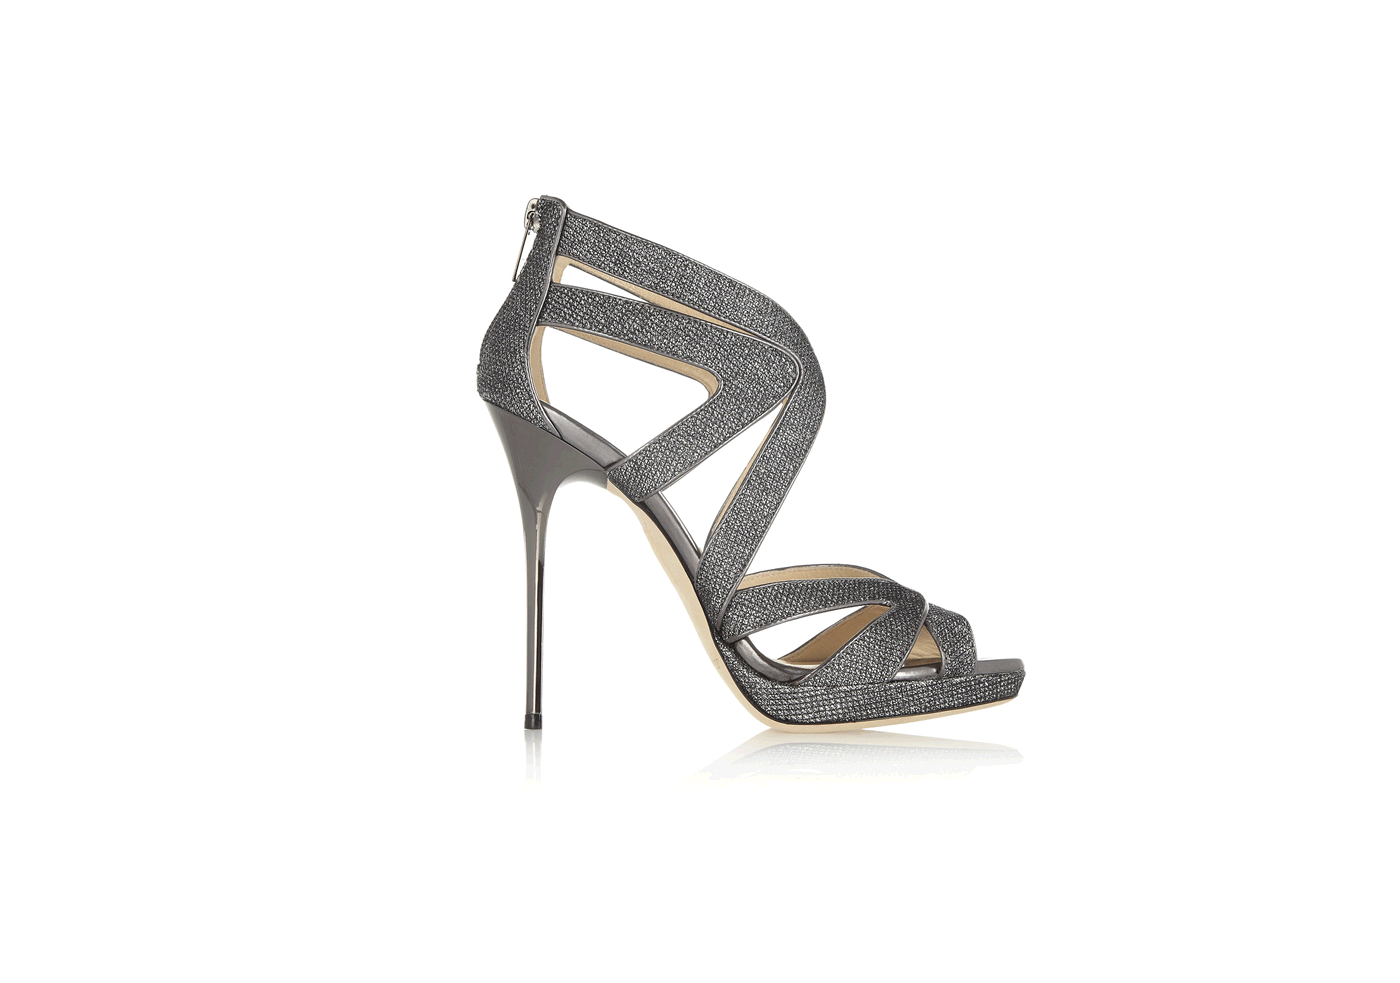 Jimmy Choo | Silver Glitter finish sandals | Cravin' Style